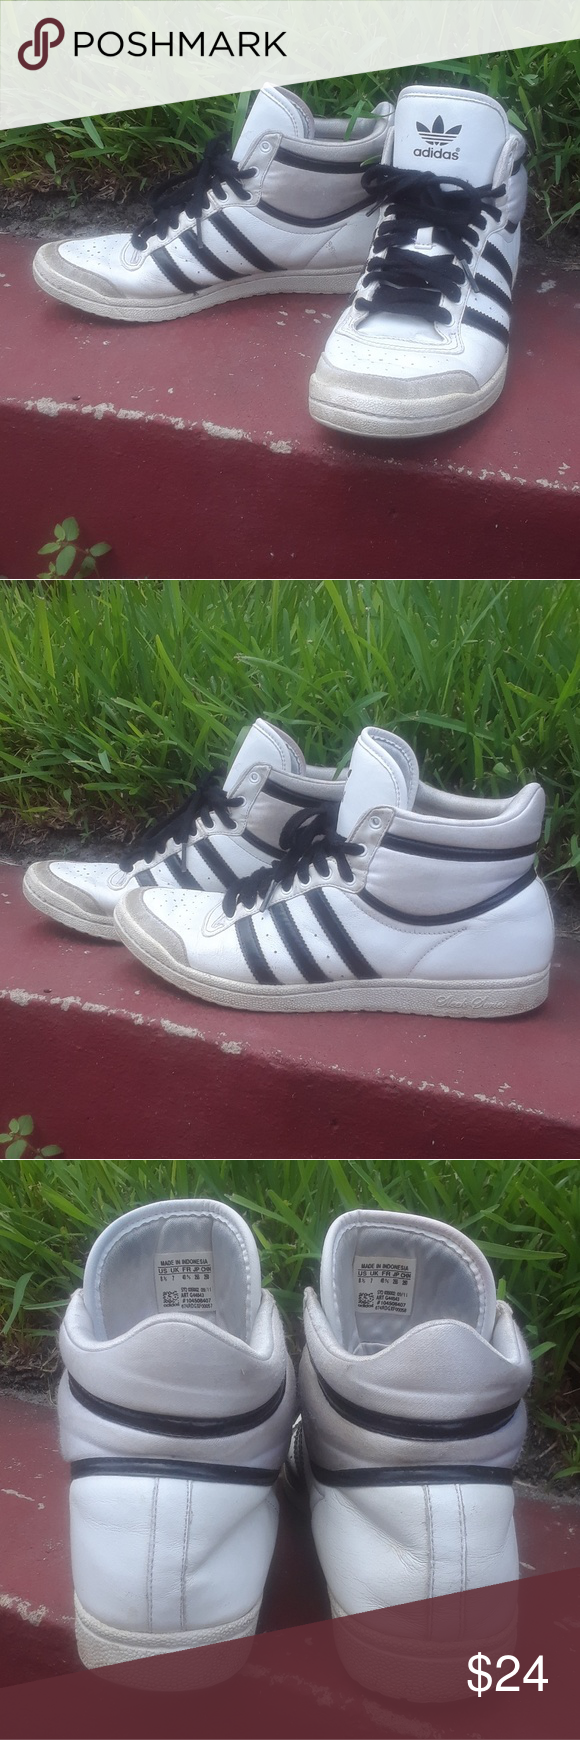 new concept 28b19 c79c7 Adidas High Top Sleek Series Adidas black and white high tops. Classic  style, Sleek Series, used. adidas Shoes Sneakers